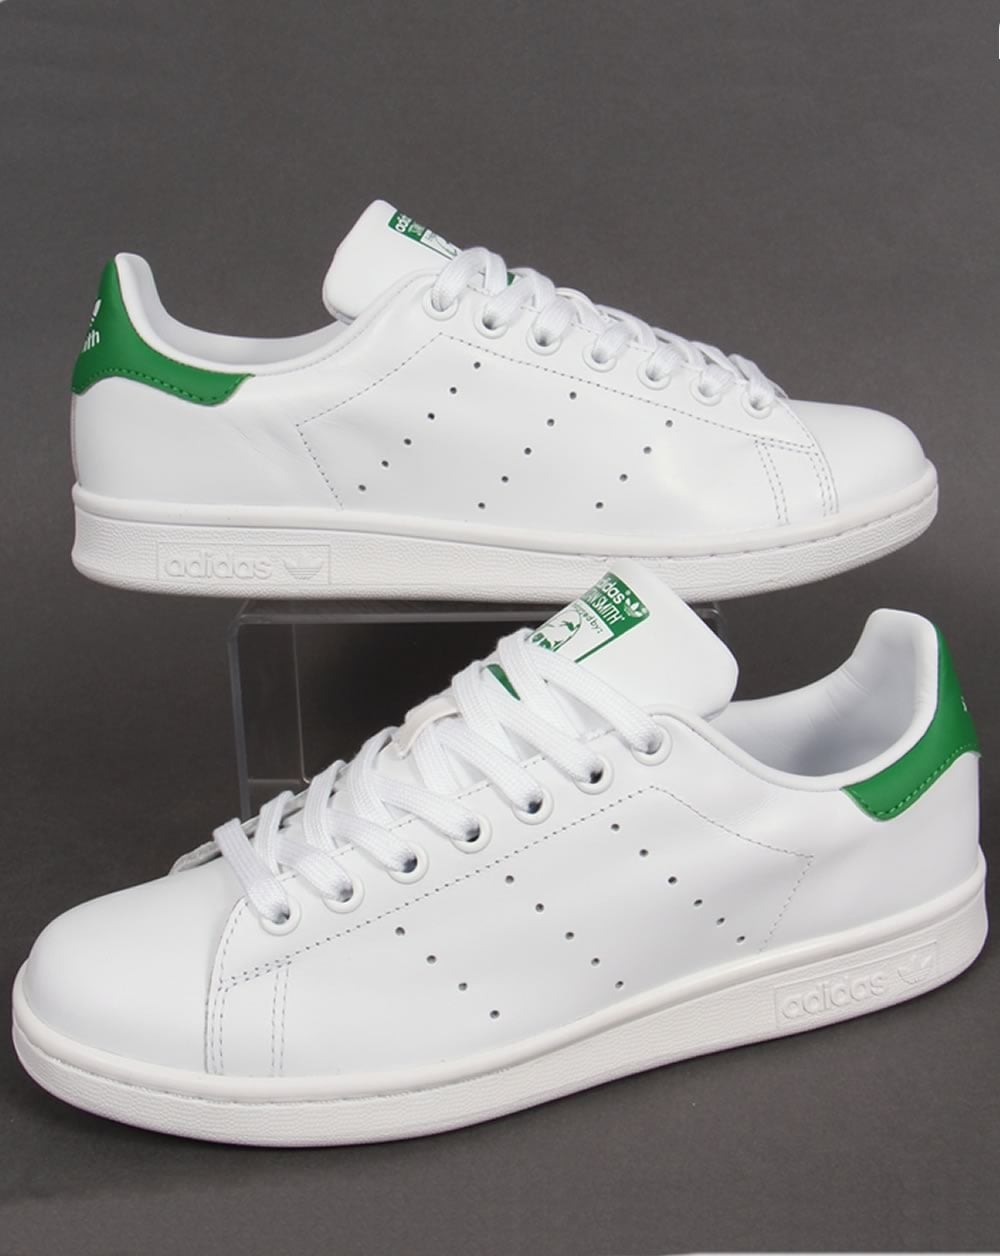 adidas stan smith white and green